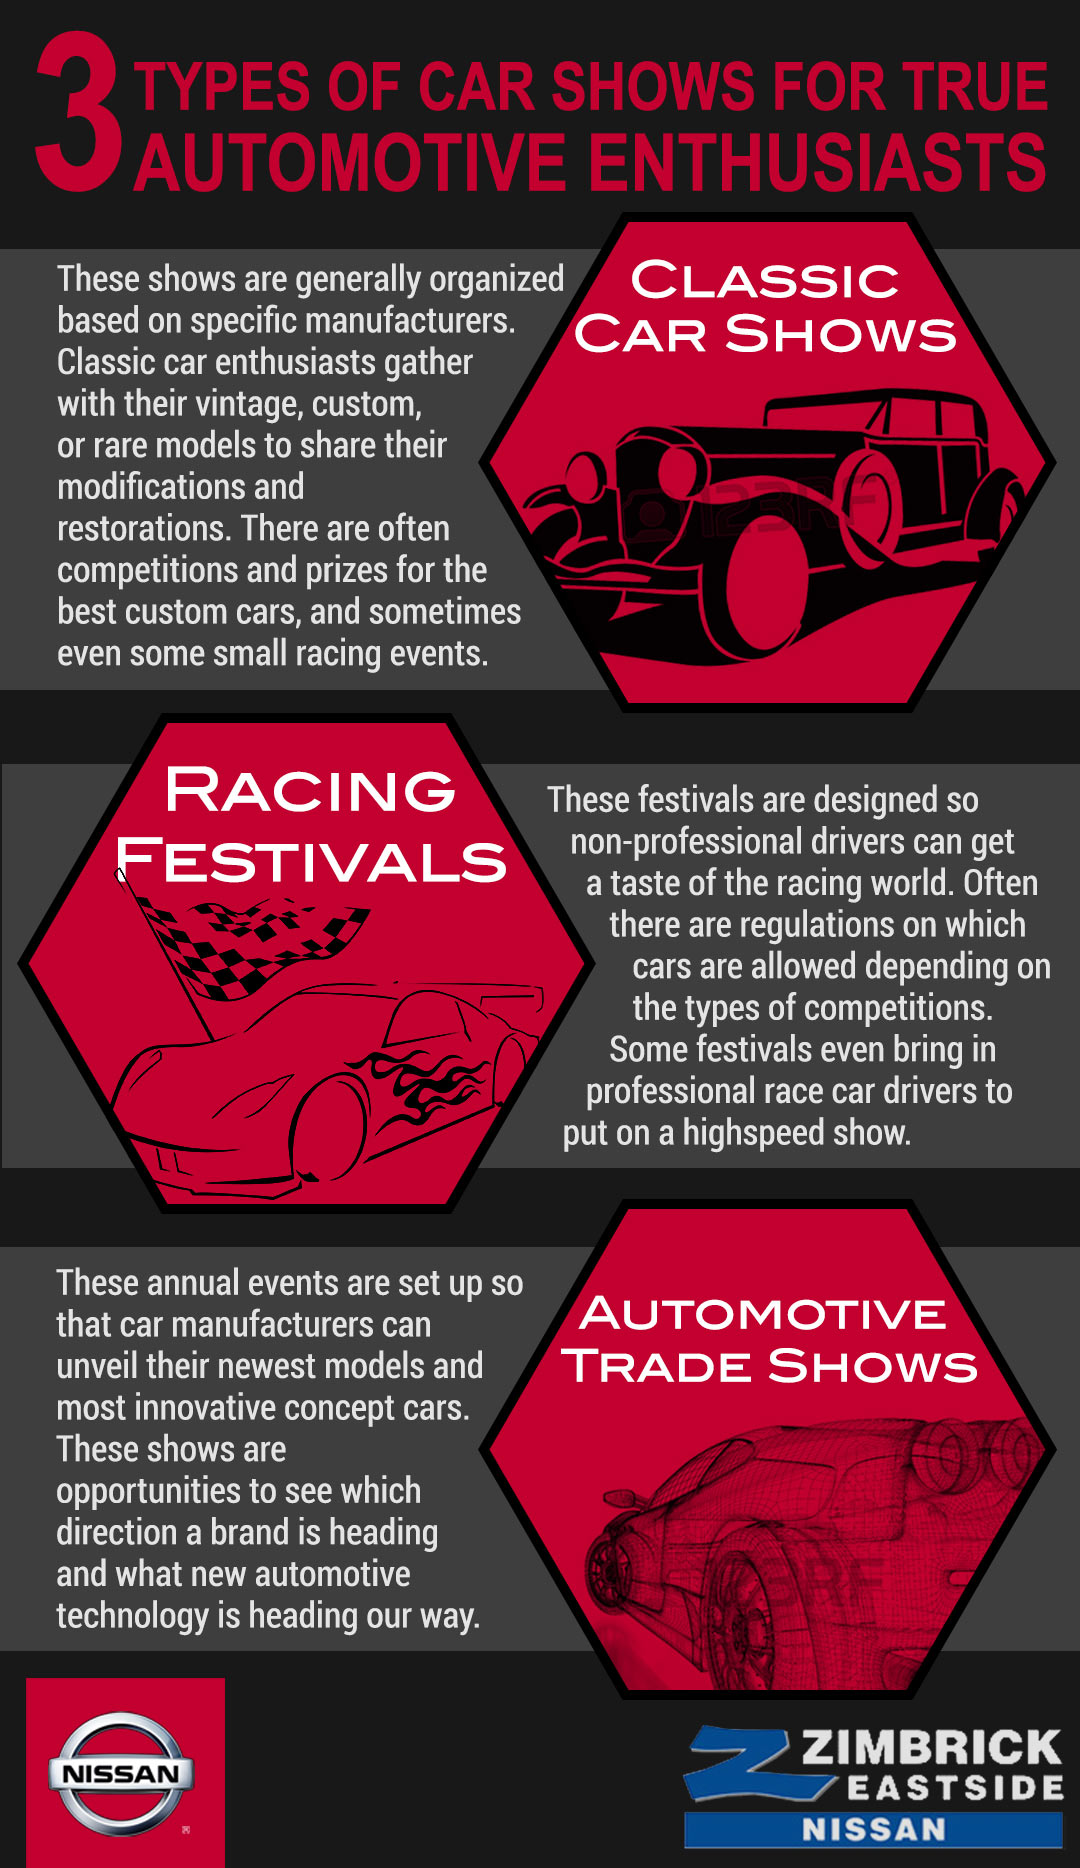 Infographic that outlines classic car shows, racing festivals, and automotive trade shows